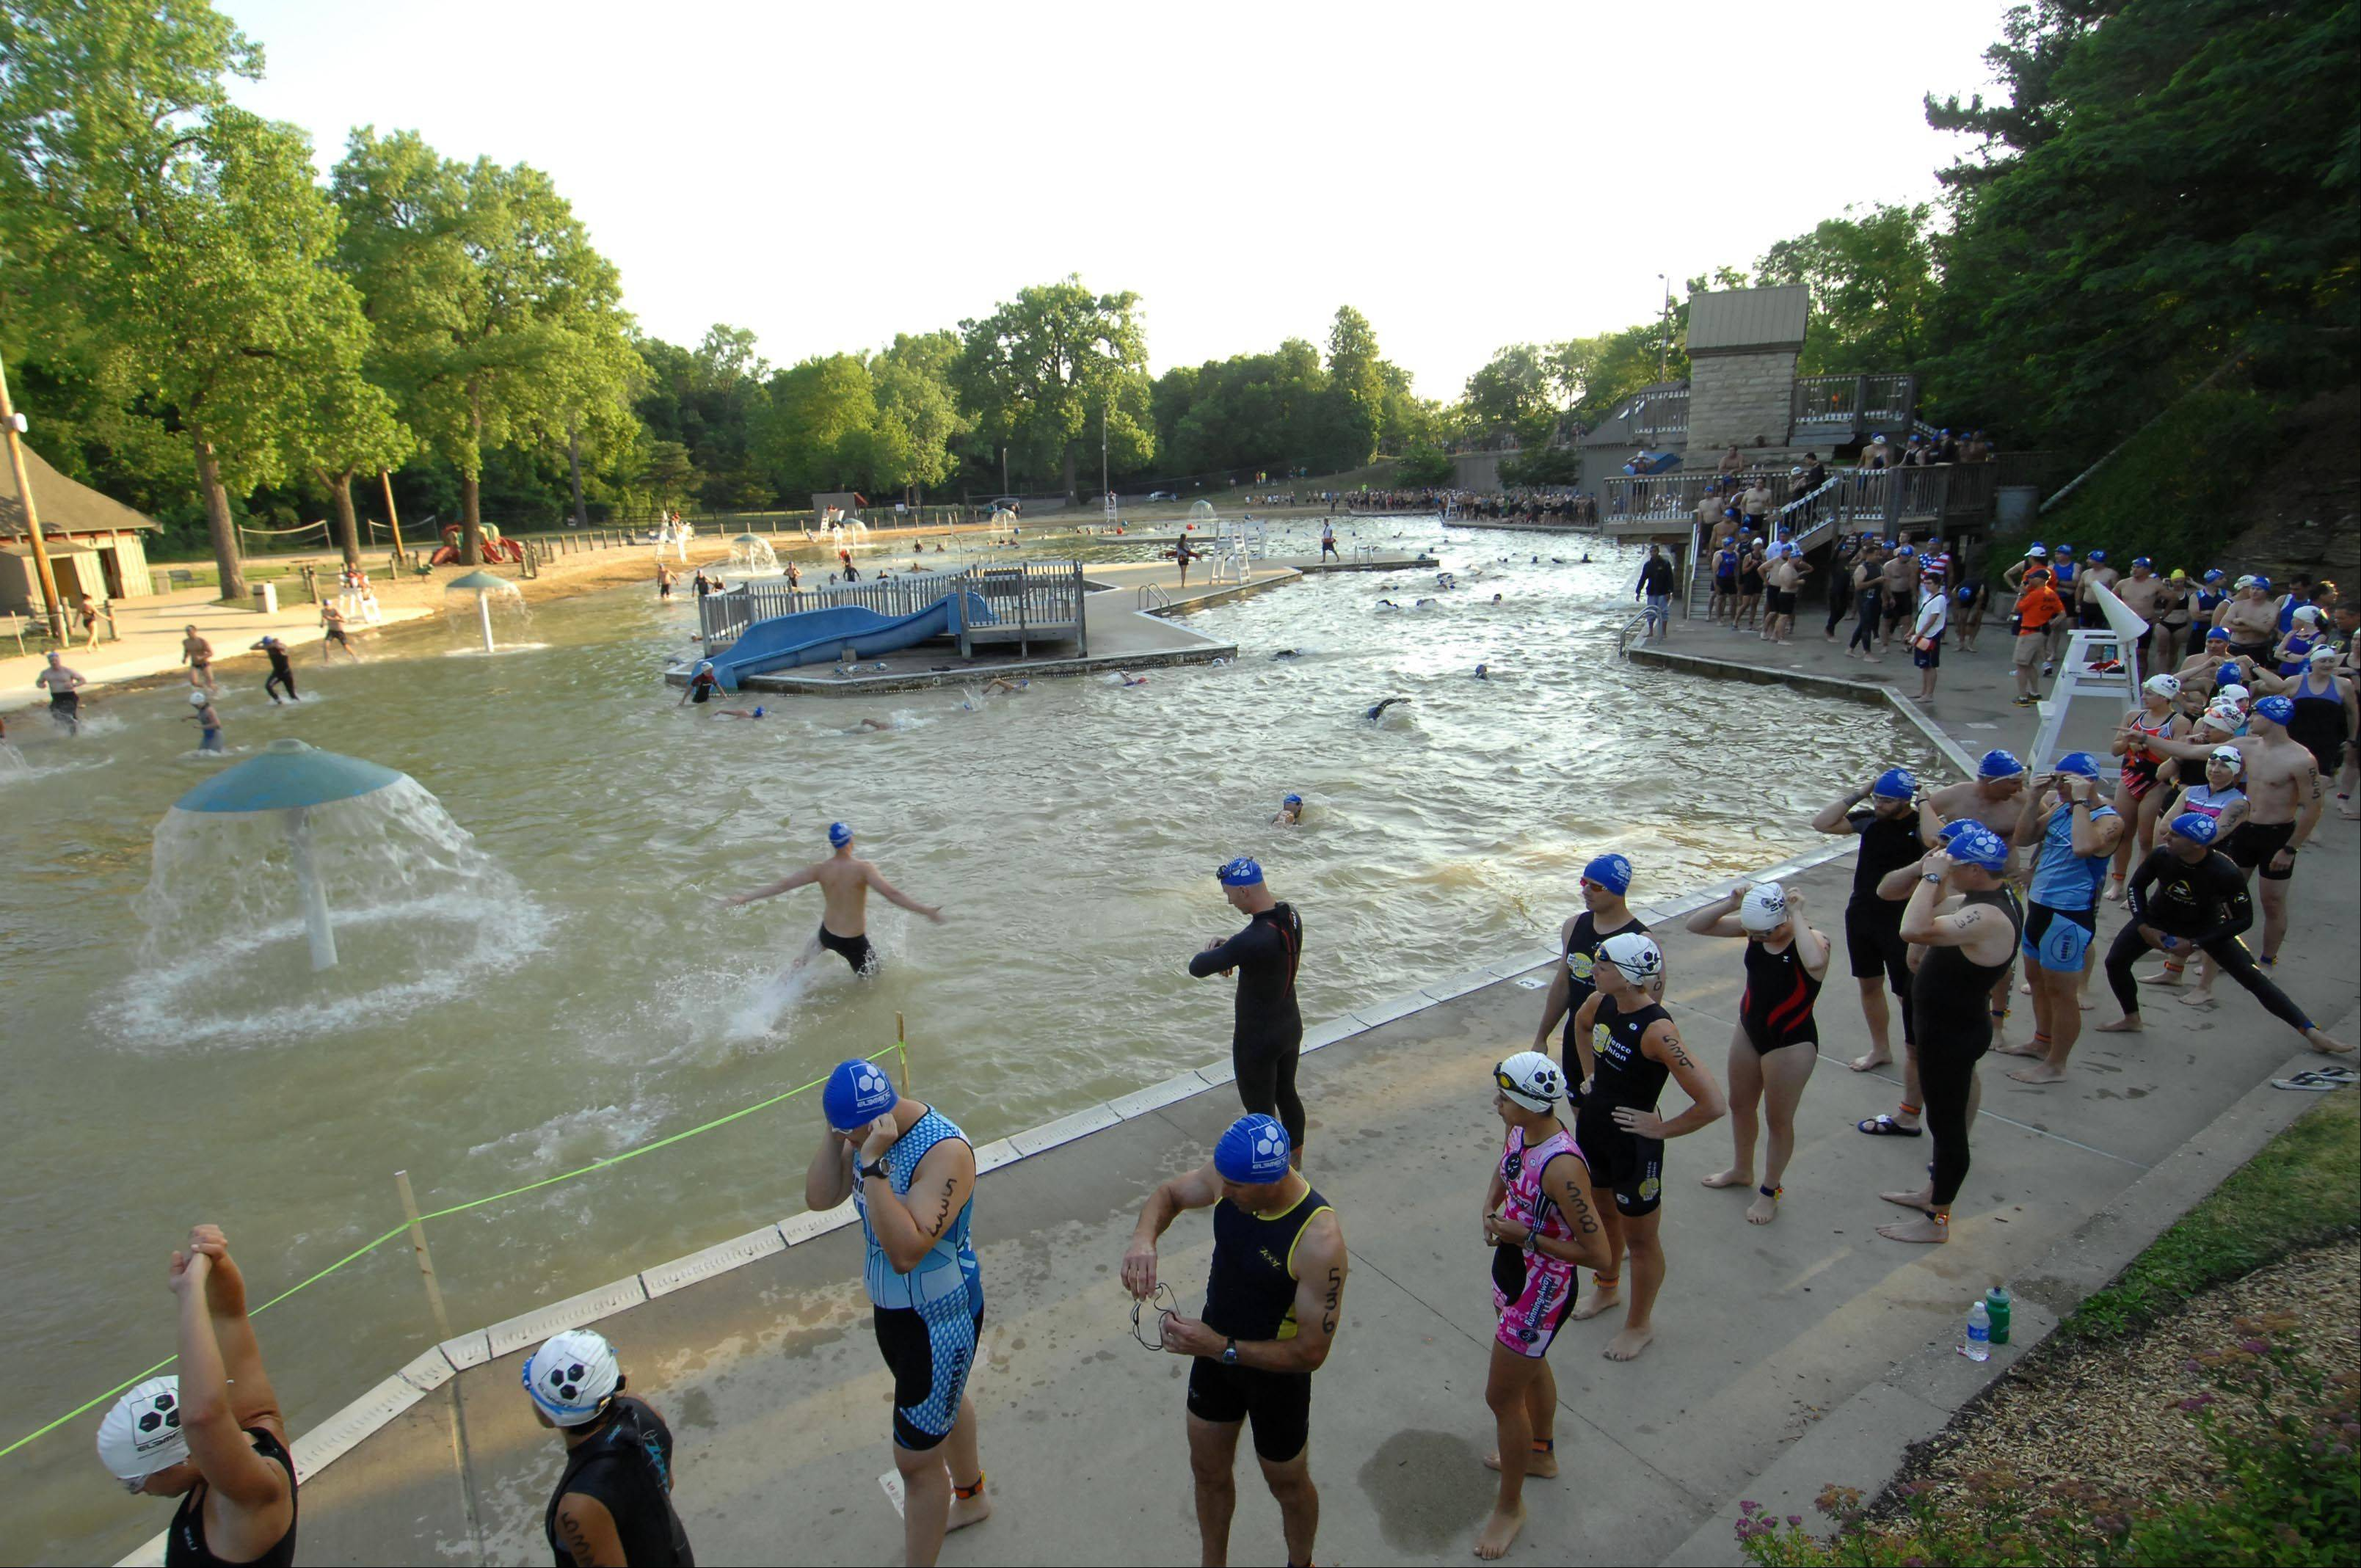 The line of competitors advances to the starting line as racers enter the water one by one at Quarry Beach at last year's Batavia Triathlon and Duathlon.